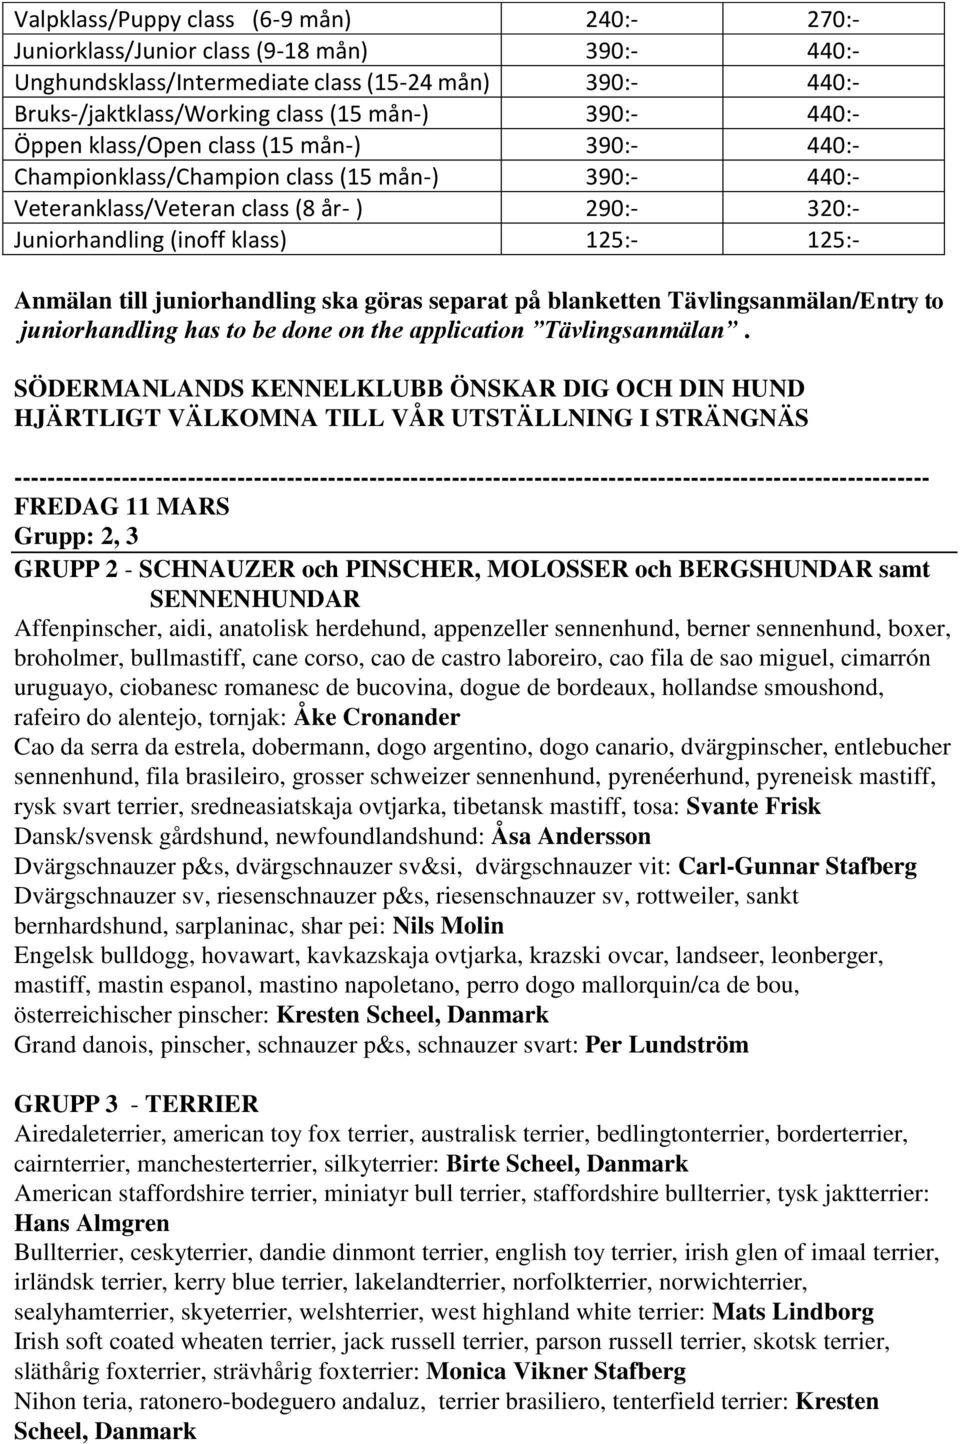 till juniorhandling ska göras separat på blanketten Tävlingsanmälan/Entry to juniorhandling has to be done on the application Tävlingsanmälan.